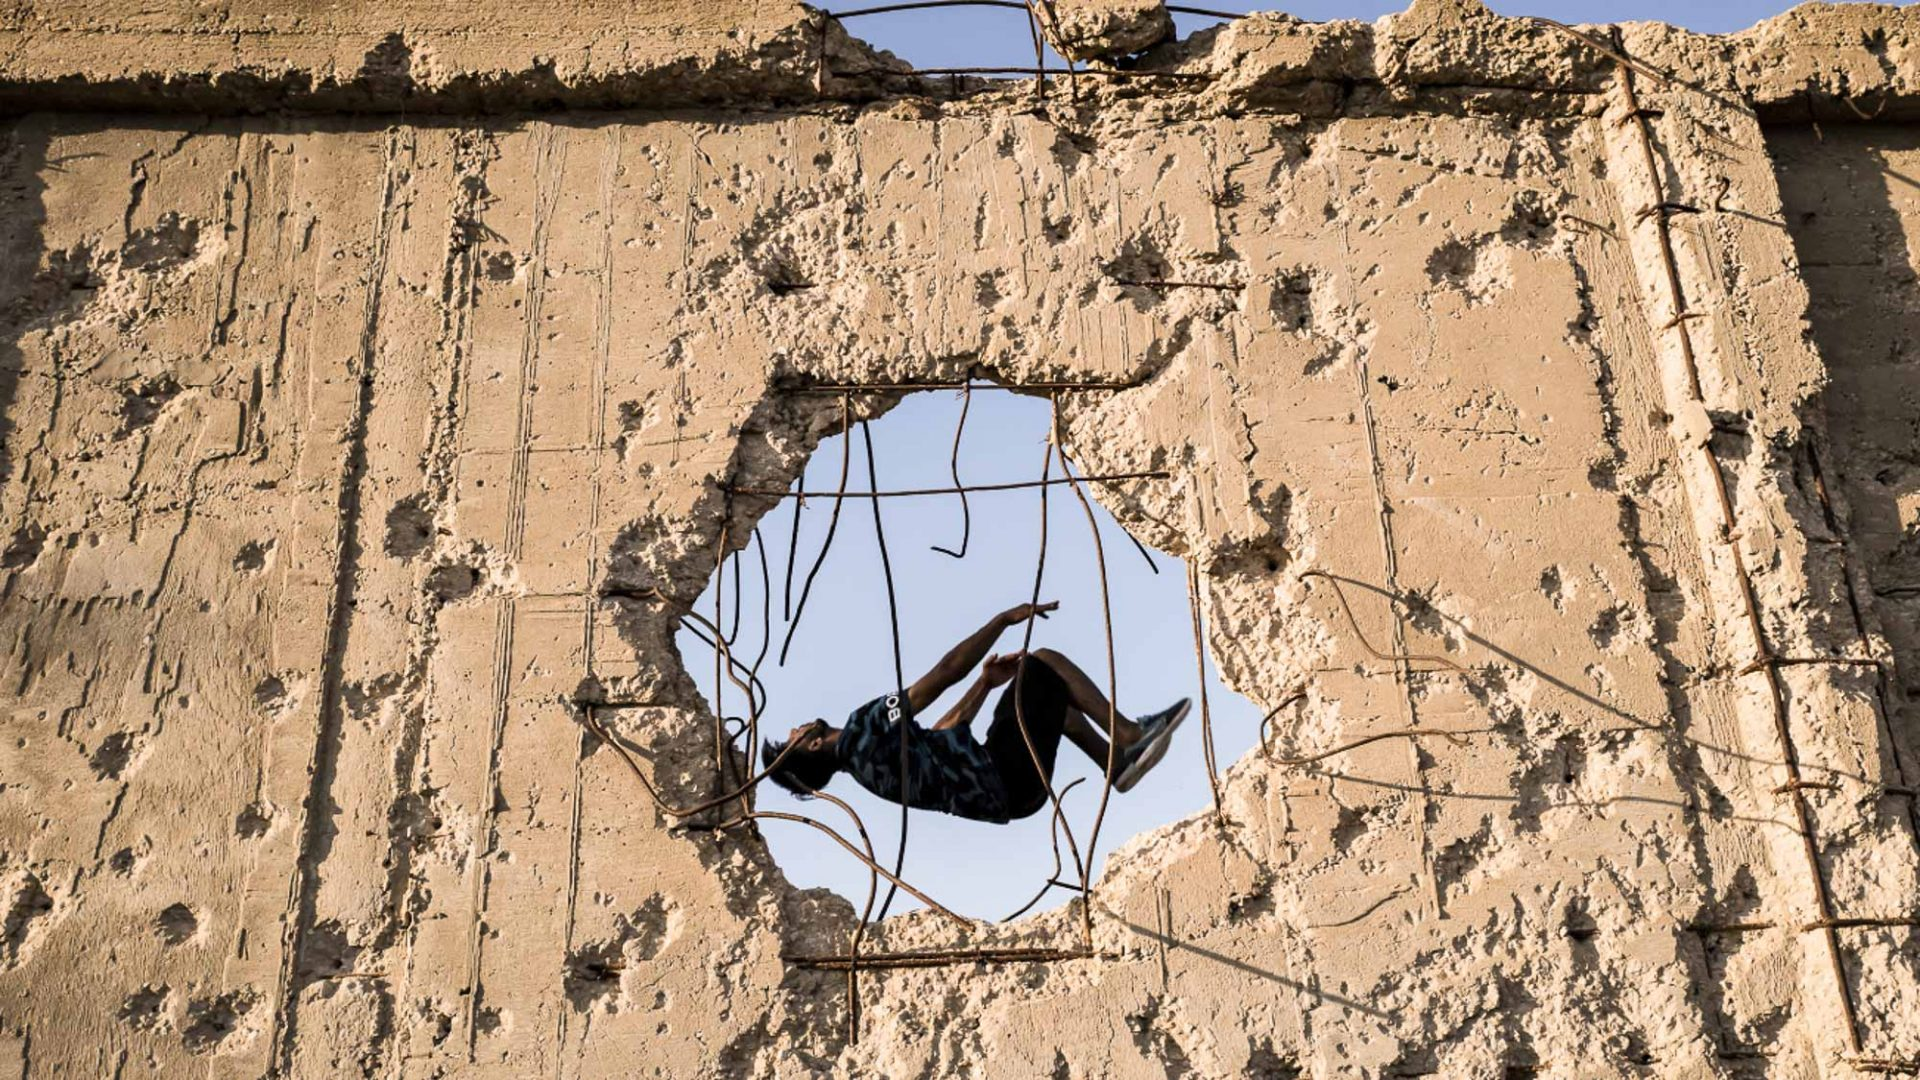 In photos: How sport and creativity is giving Gaza's youth a vital release